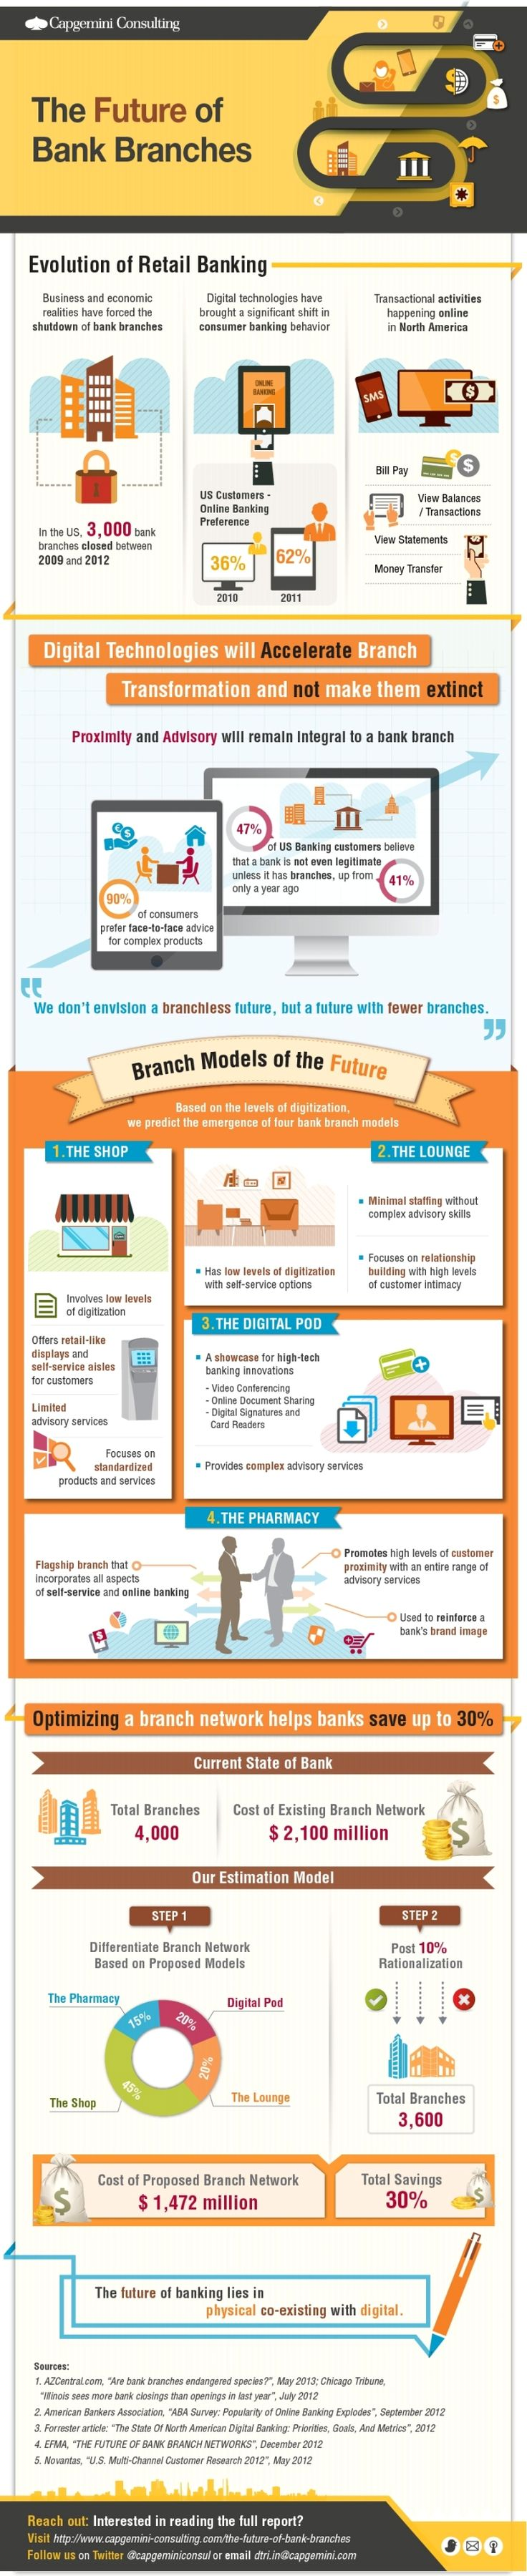 The Future of Bank Branches: Coordinating Physical with Digital | Capgemini Consulting Worldwide